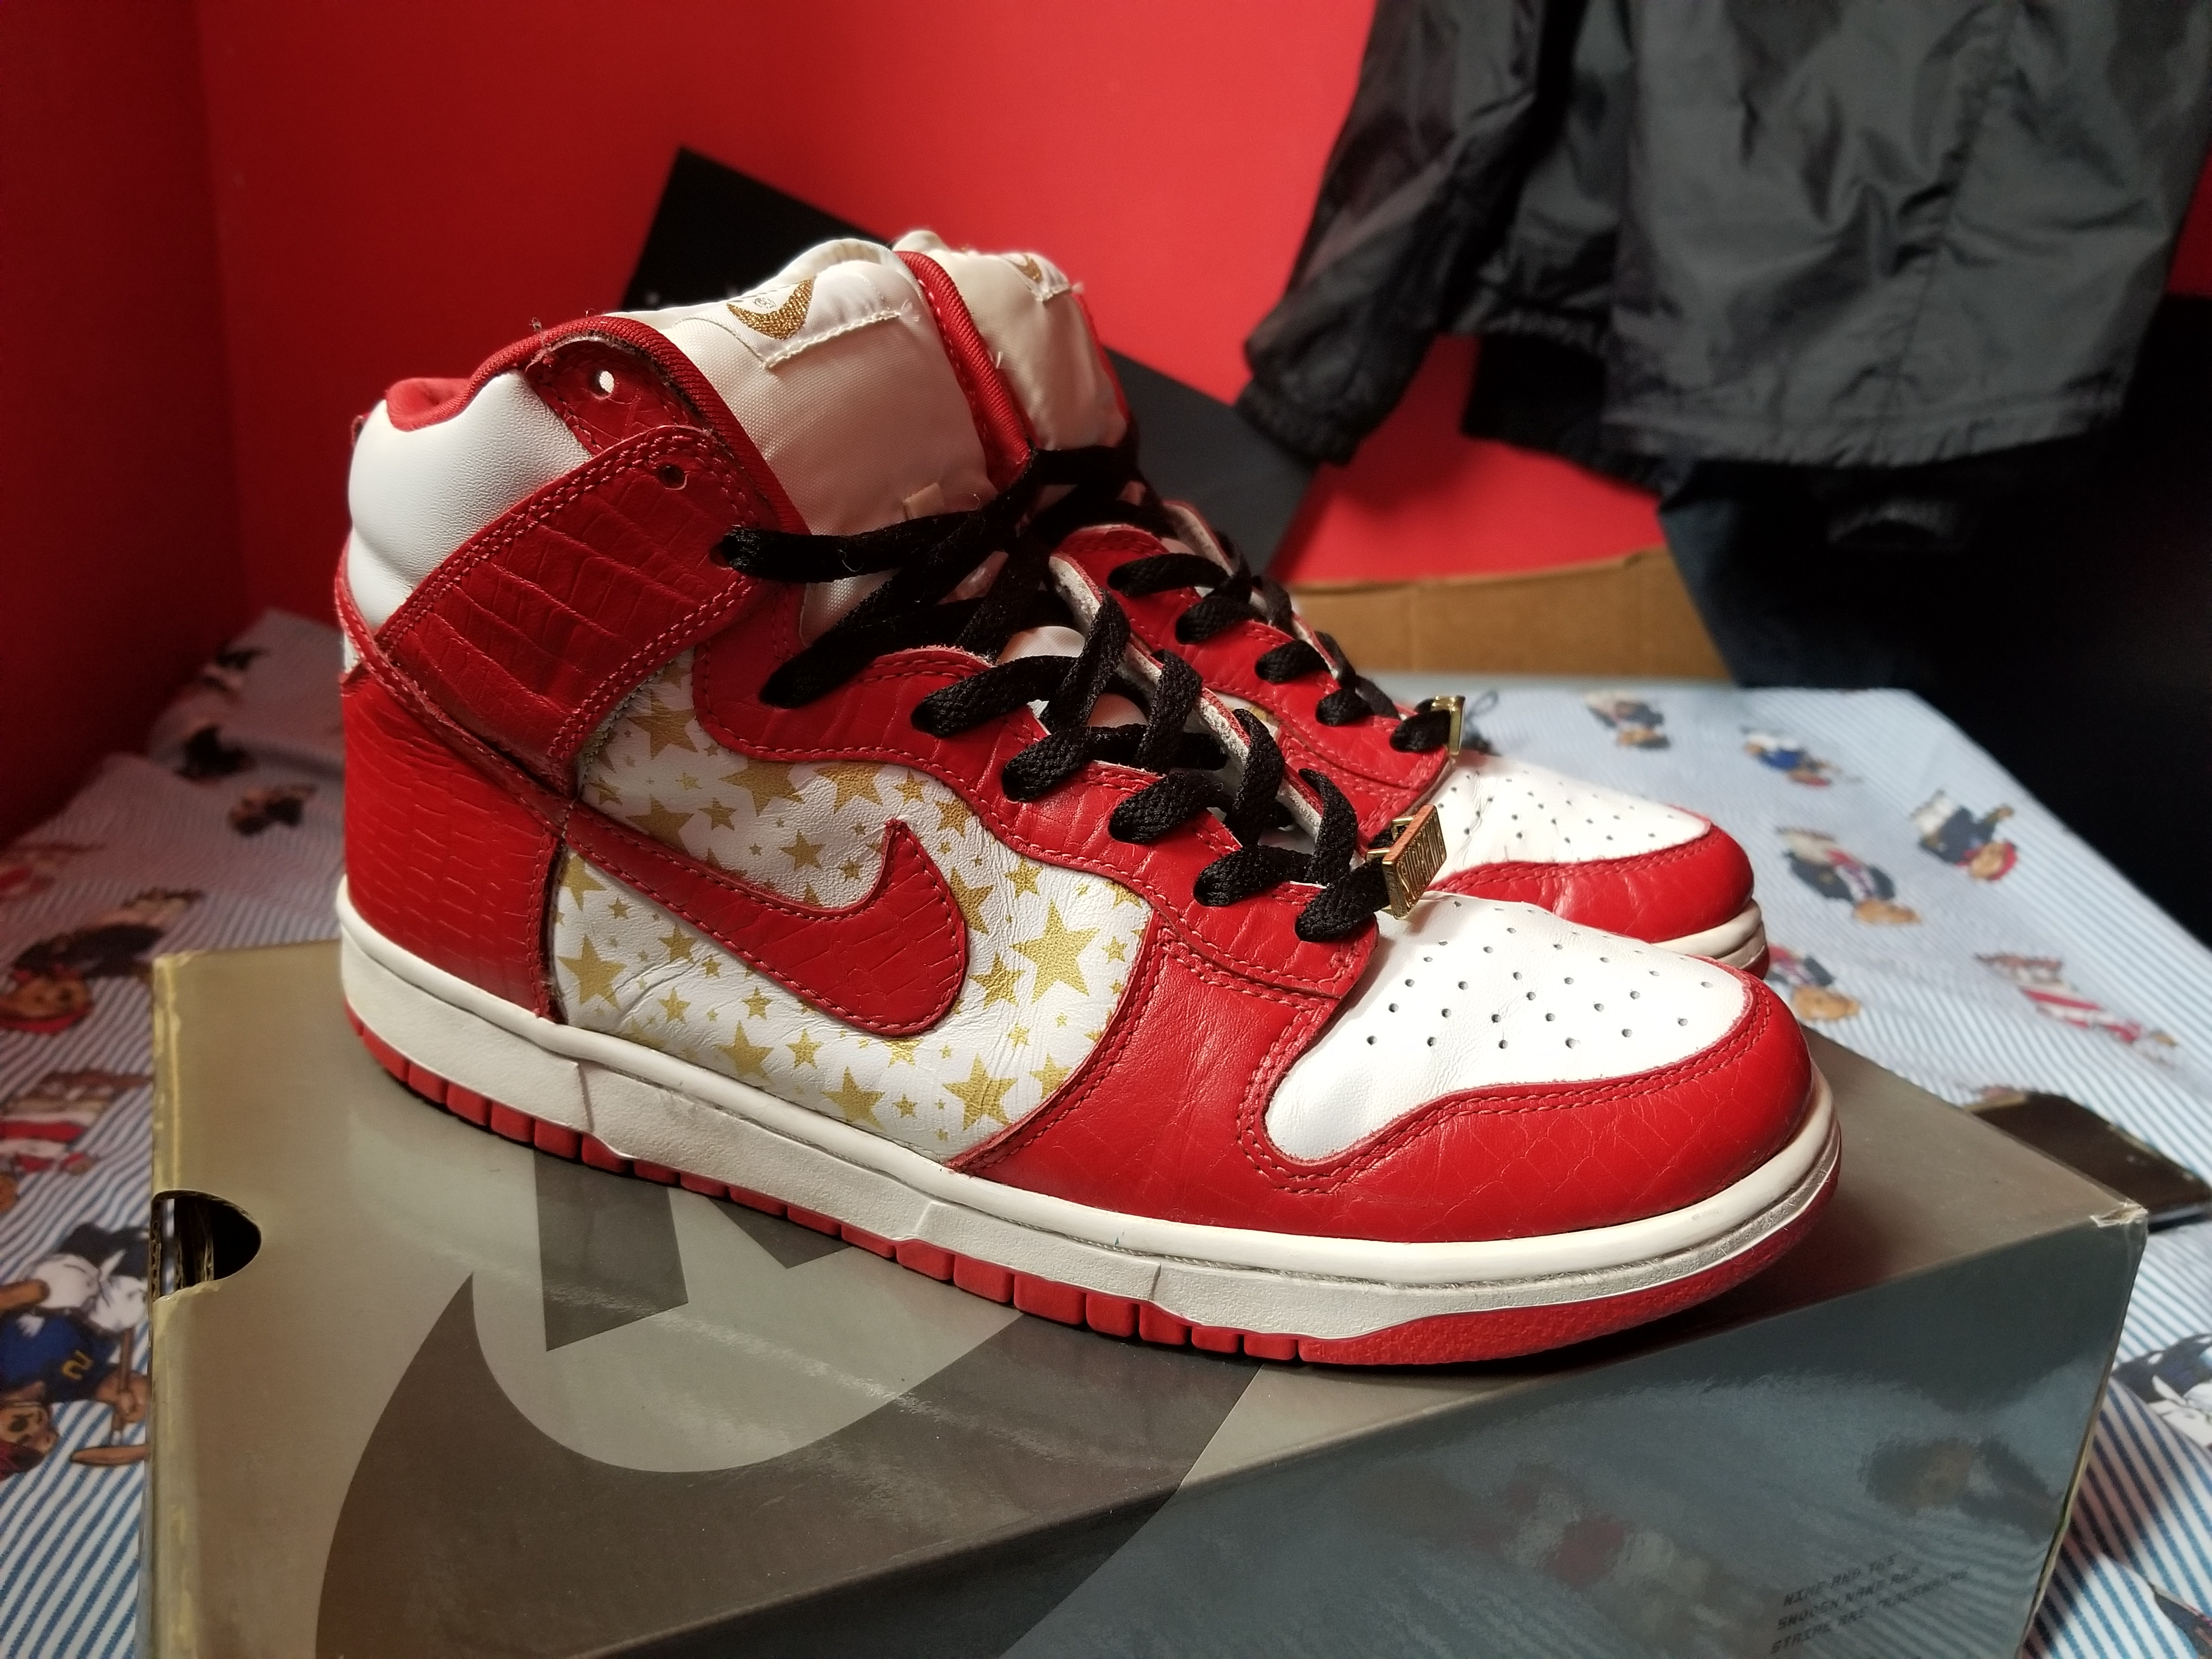 newest 3e7a9 df96f NIKE SB X SUPREME DUNK HIGH PRO SB RED STAR *Very Rare Grail*